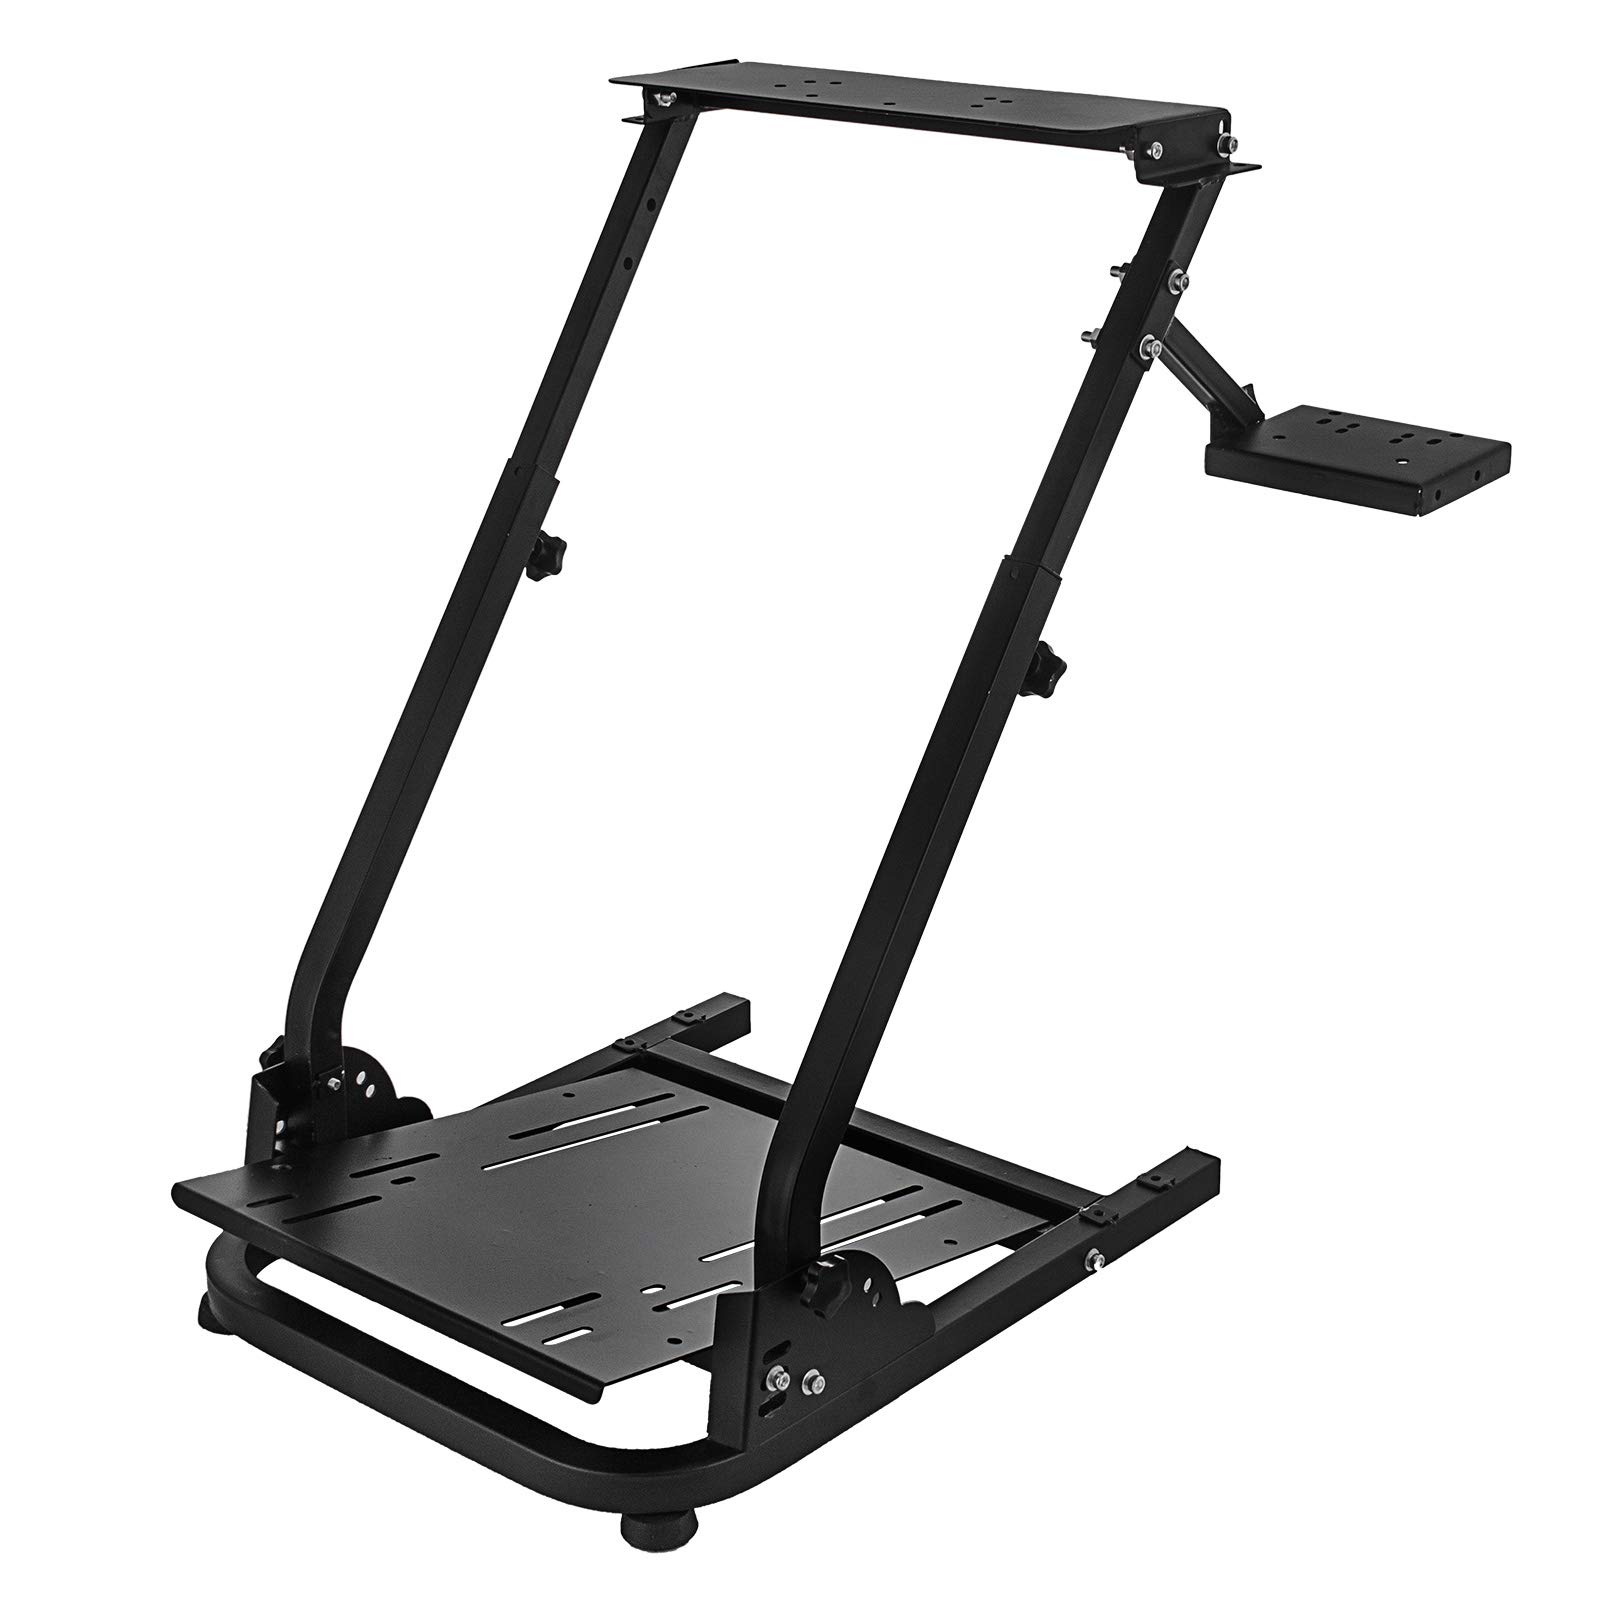 SmarketBuy Racing Wheel Stand Height Adjustable Driving Simulator Cockpit Compatible with Logitech G25, G27, G29, G920 Gaming Cockpit (G920) by SmarketBuy